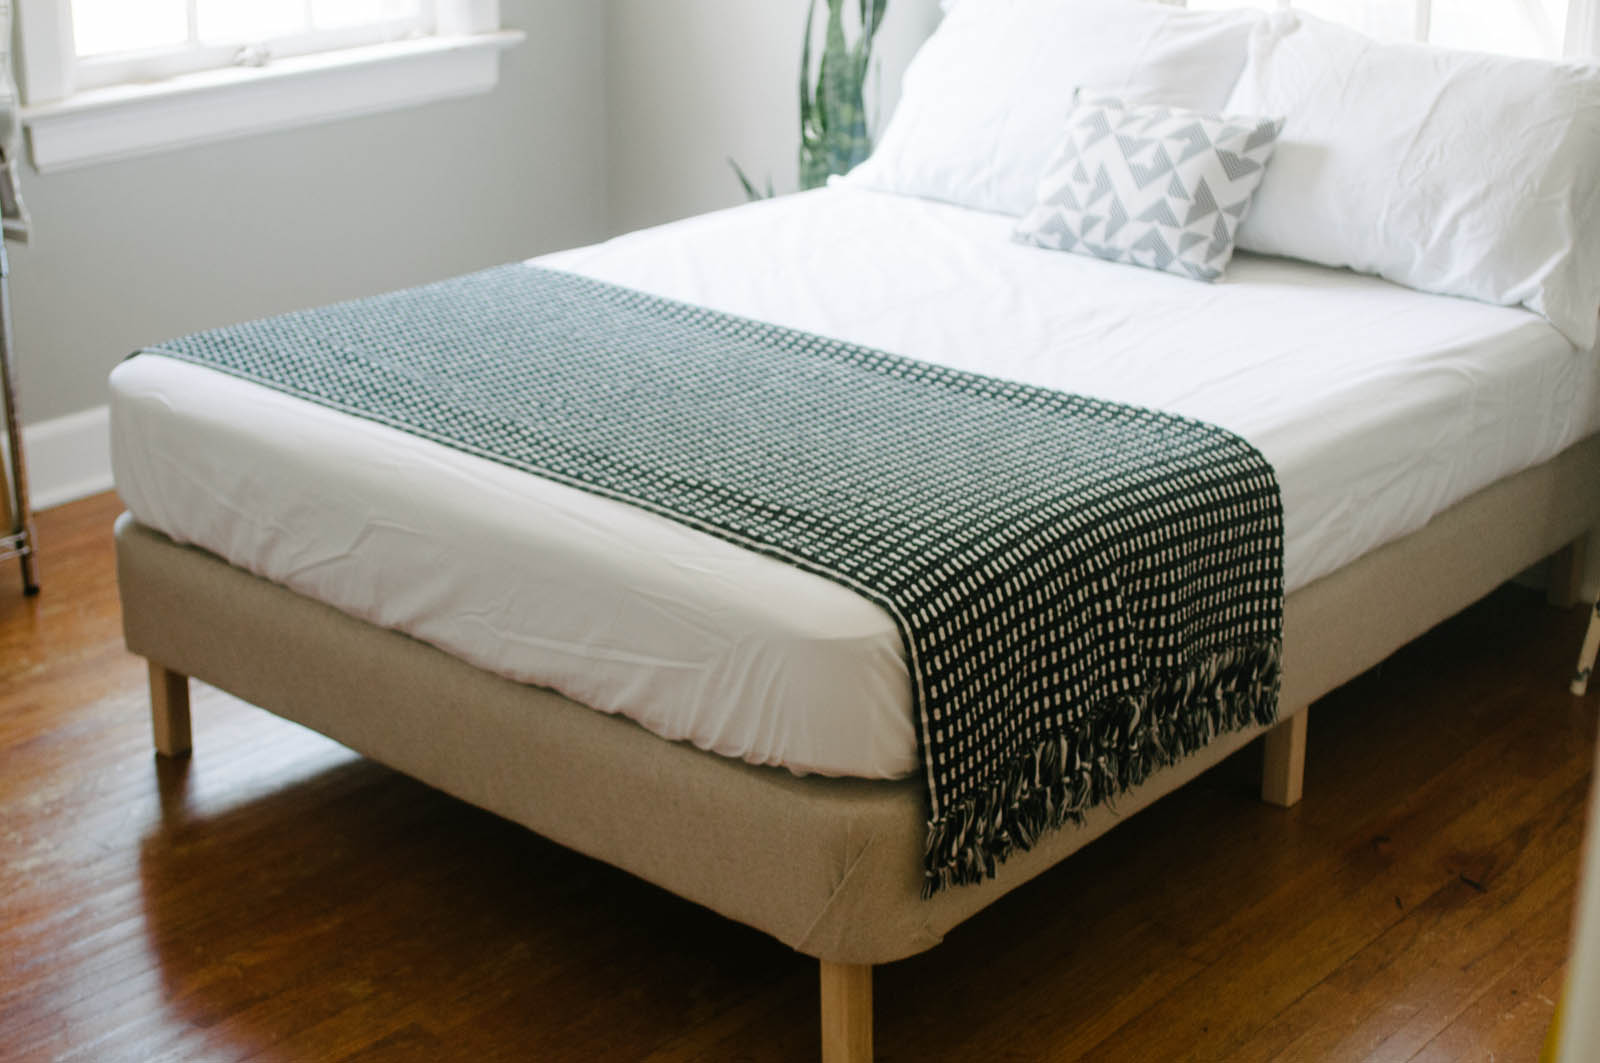 Diy Minimalist Bed Frame 21 Diy Bed Frames To Give Yourself The Restful Spot Of Your Dreams